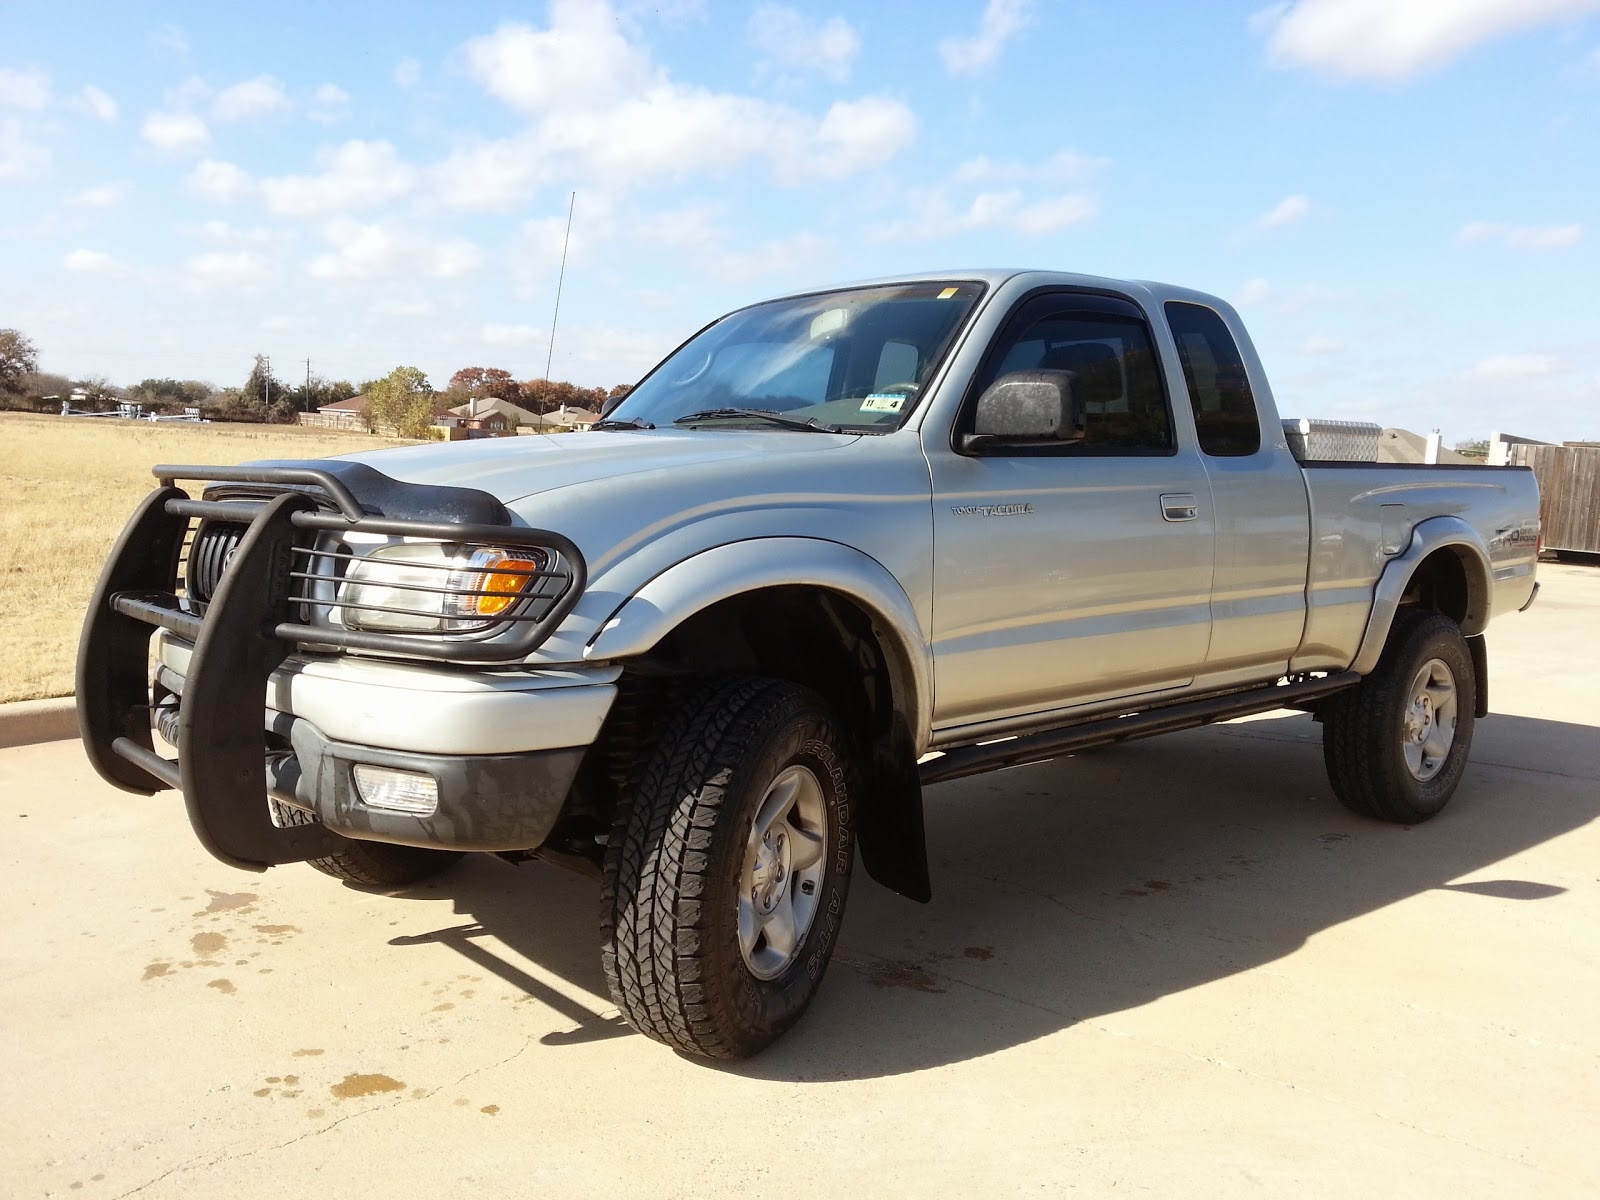 tdy sales 817 243 9840 for sale 2002 toyota tacoma 4x4 sr5 6cyl pickup truck tdy sales new. Black Bedroom Furniture Sets. Home Design Ideas